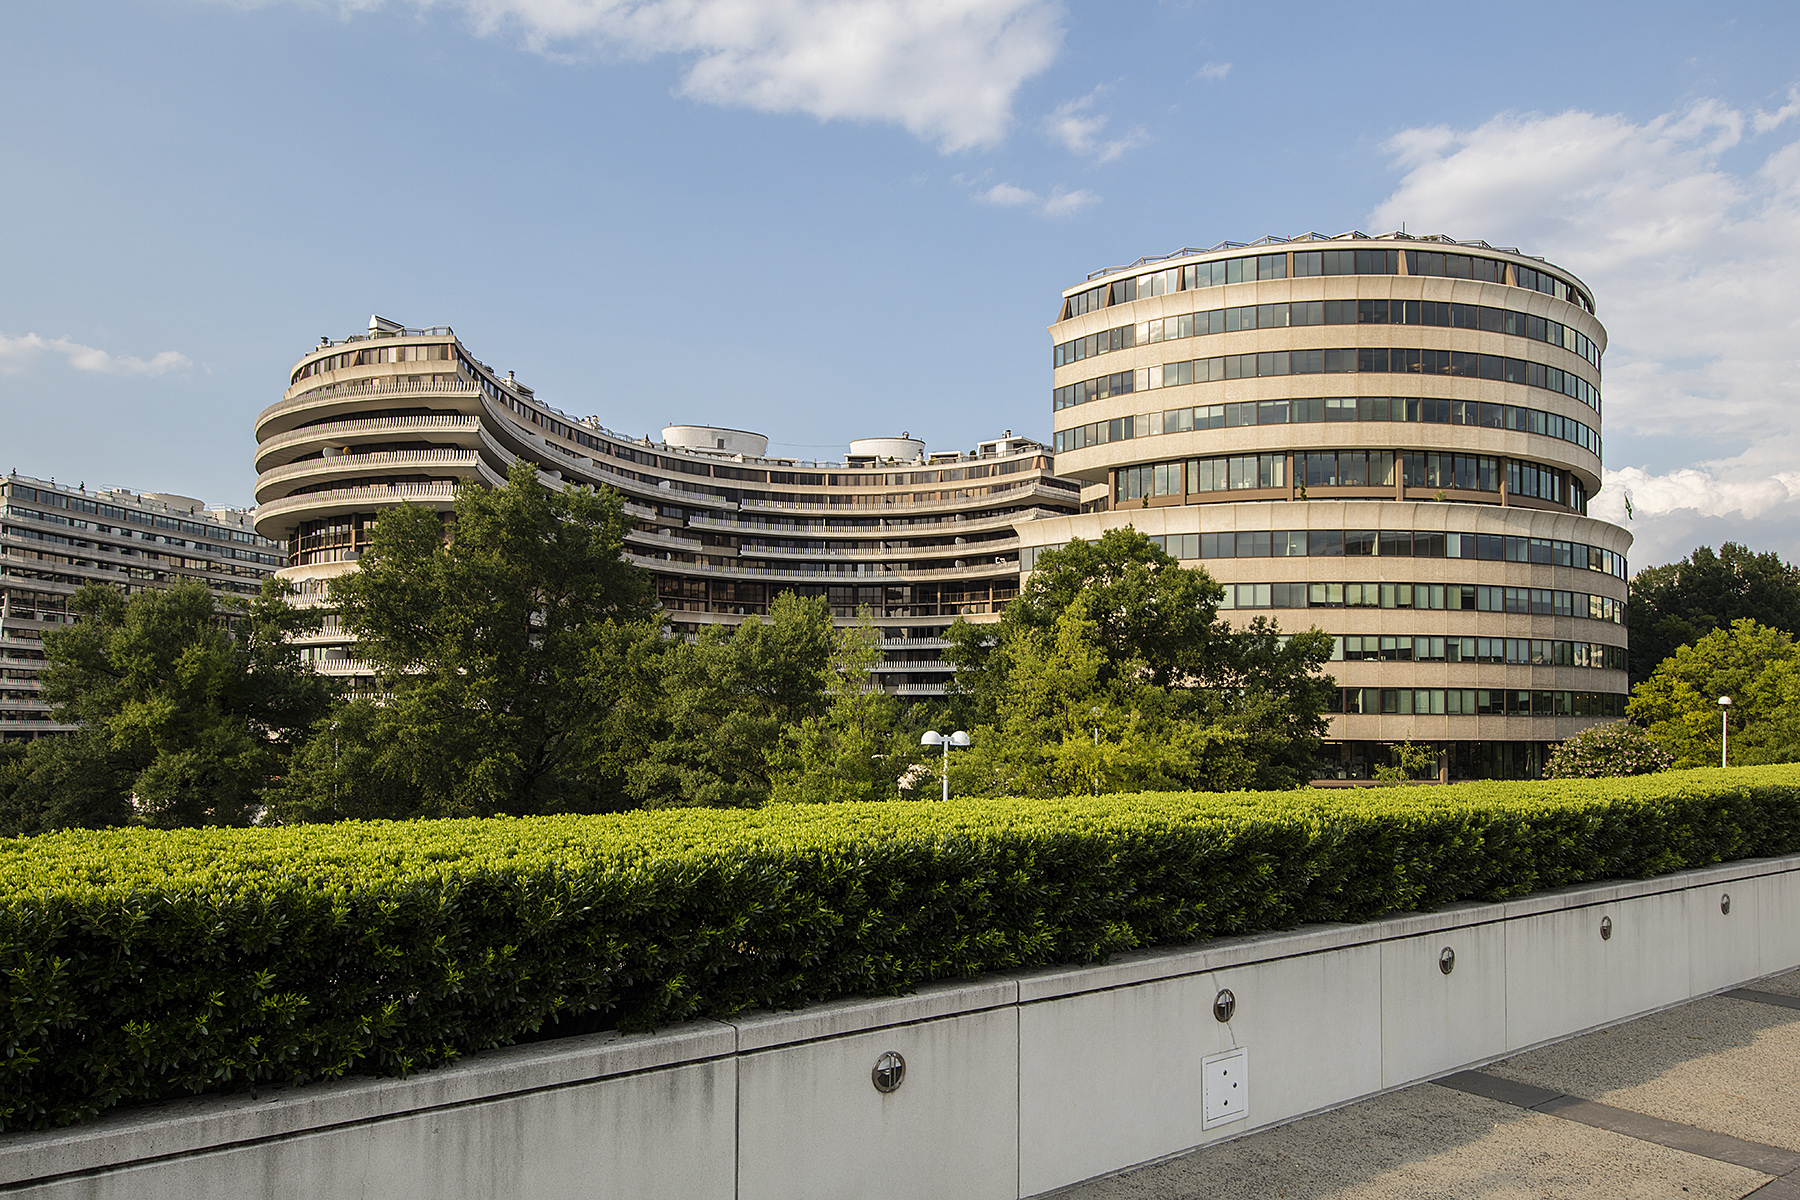 View of the Watergate from the Kennedy Center. Photo: Alston Thompson Photography